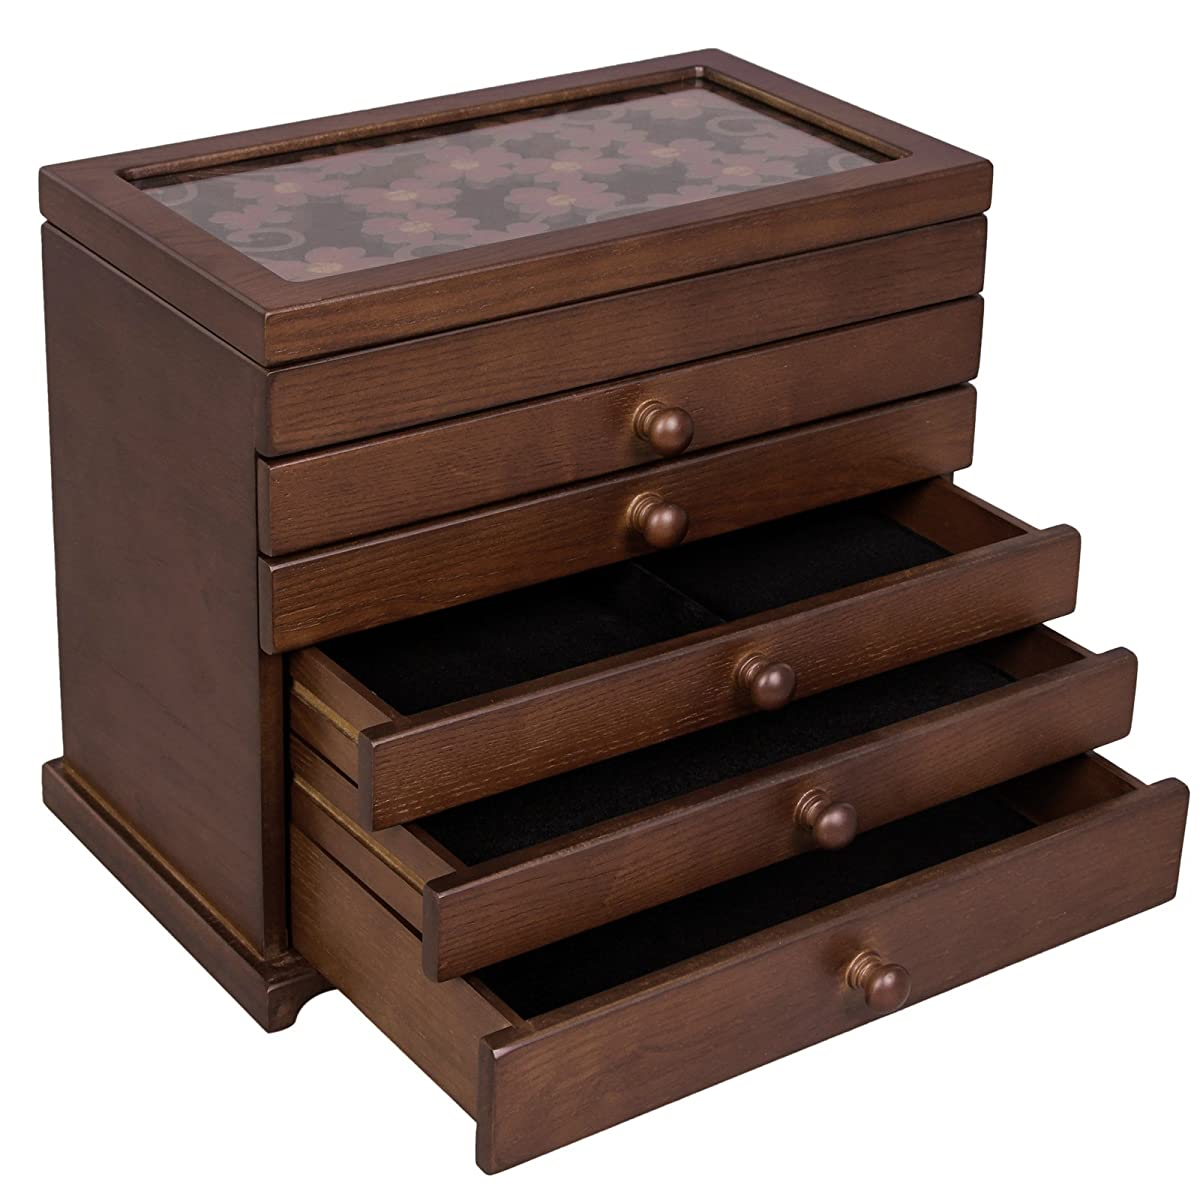 SONGMICS Large Jewelry Organizer Wooden Storage Box 6 Layers Case with 5 Drawers Gift for Mom,Dark Brown UJOW56W